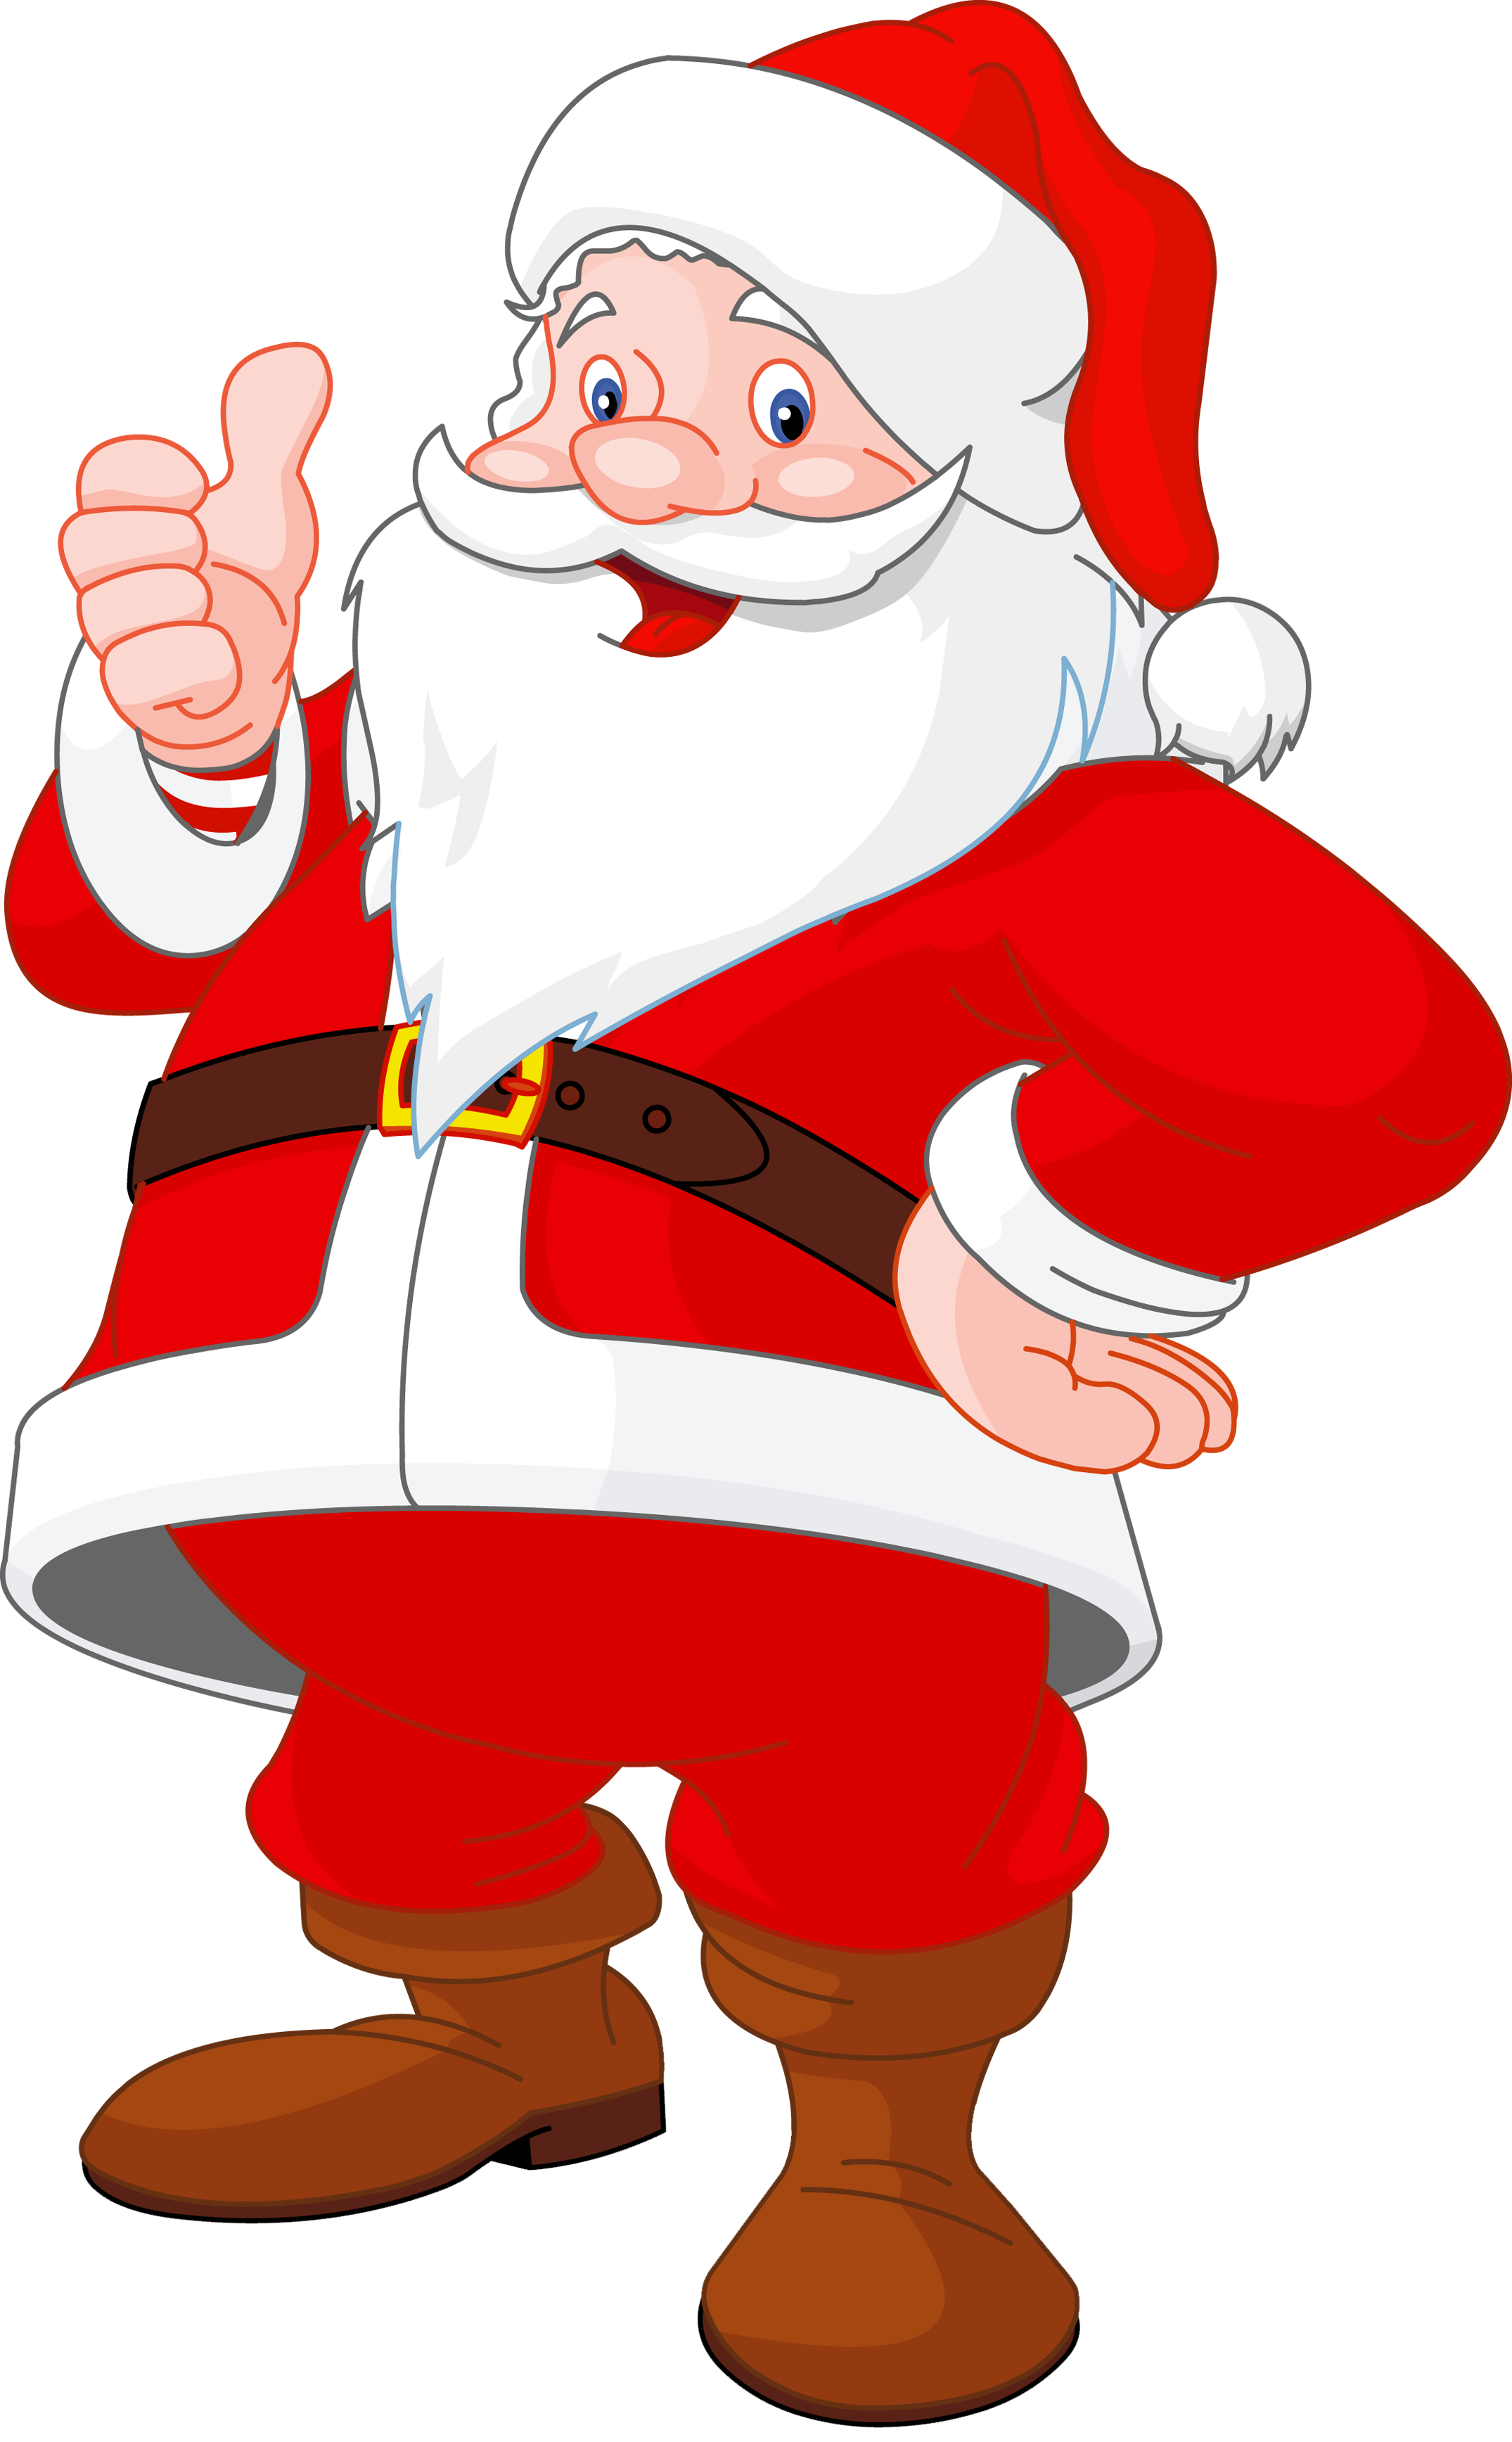 santa claus cartoon christmas clip art images on a transparent background - Santa Claus Santa Claus Santa Claus